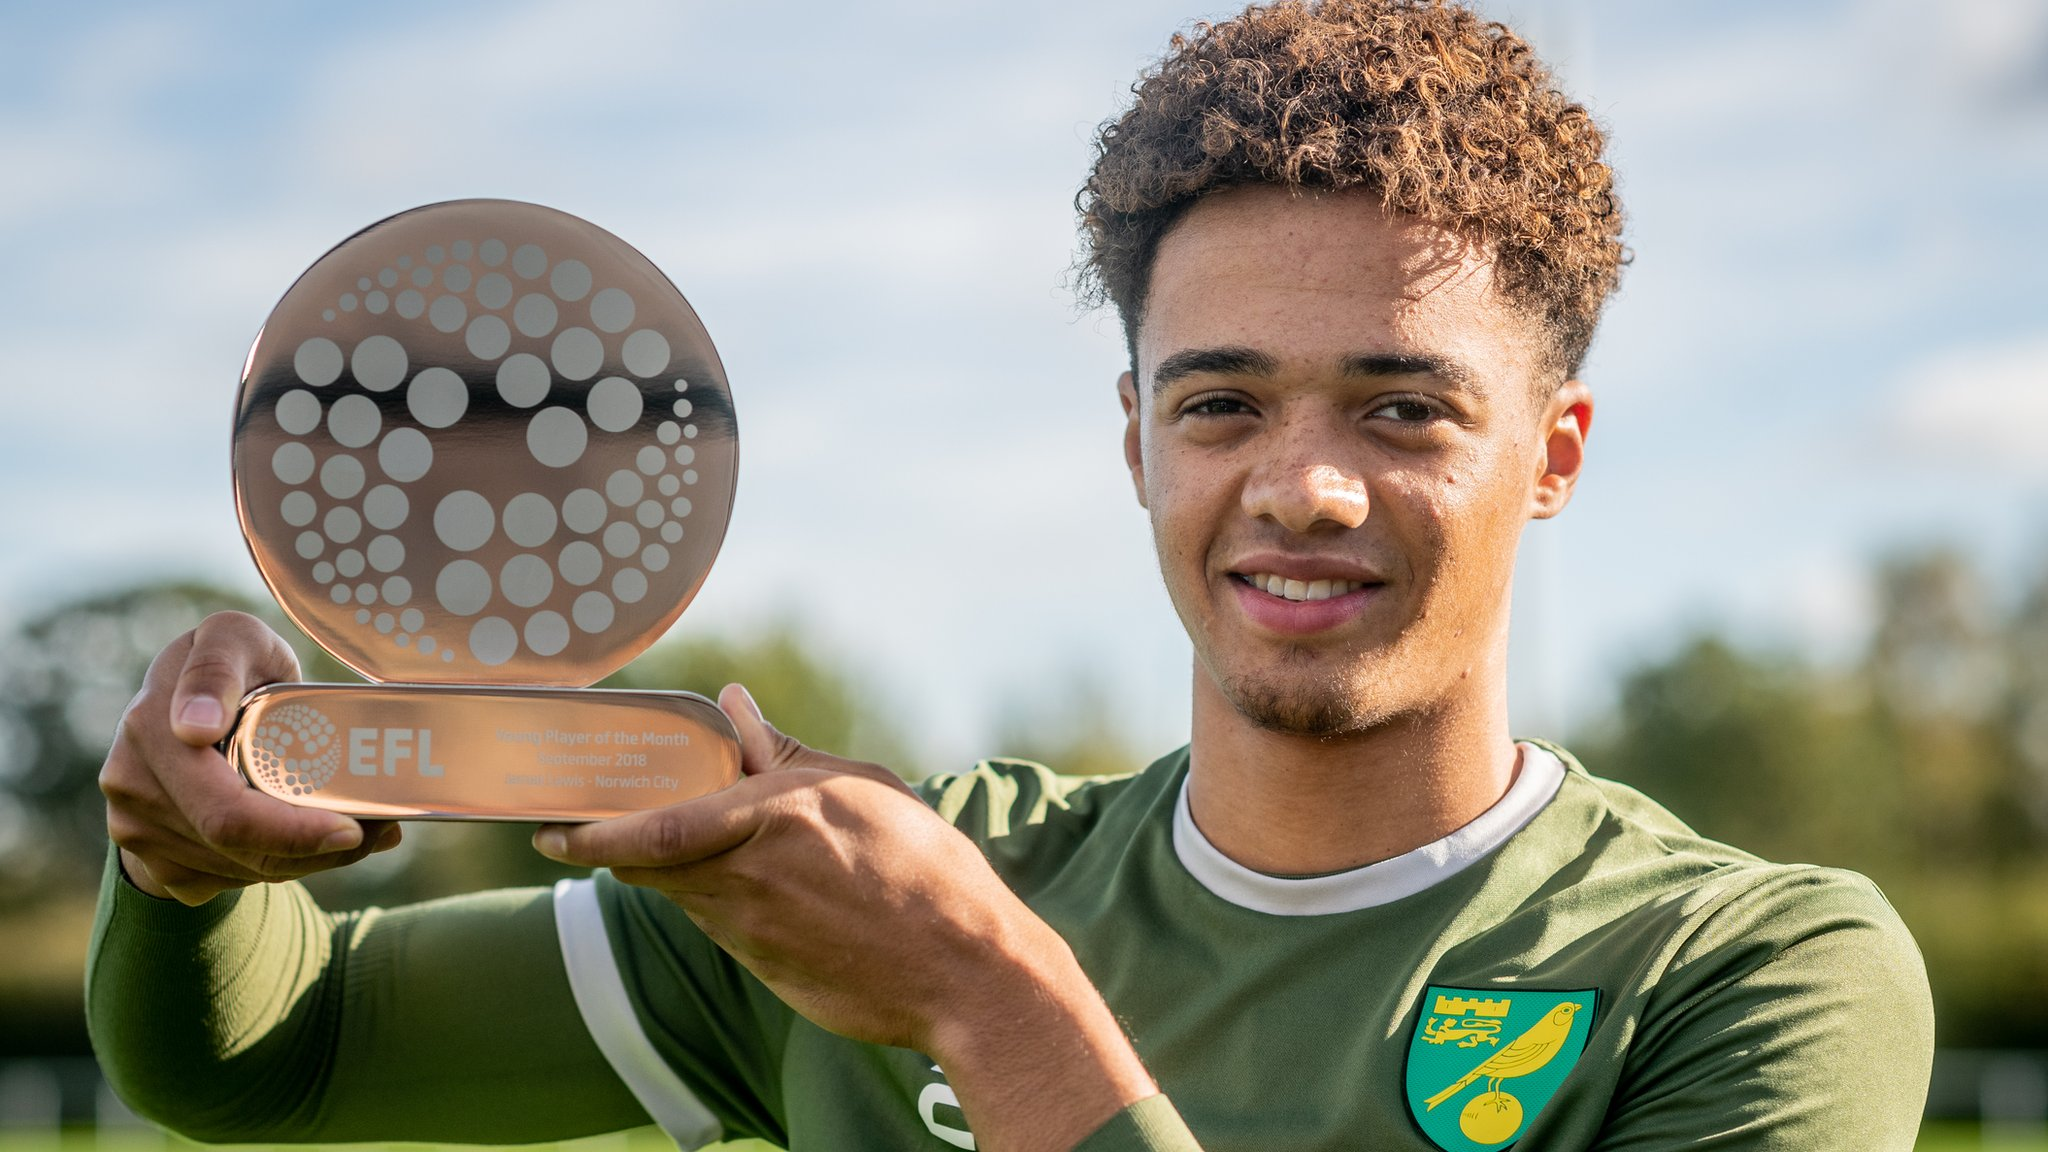 Jamal Lewis: Norwich City left-back wins EFL Young Player of the Month award